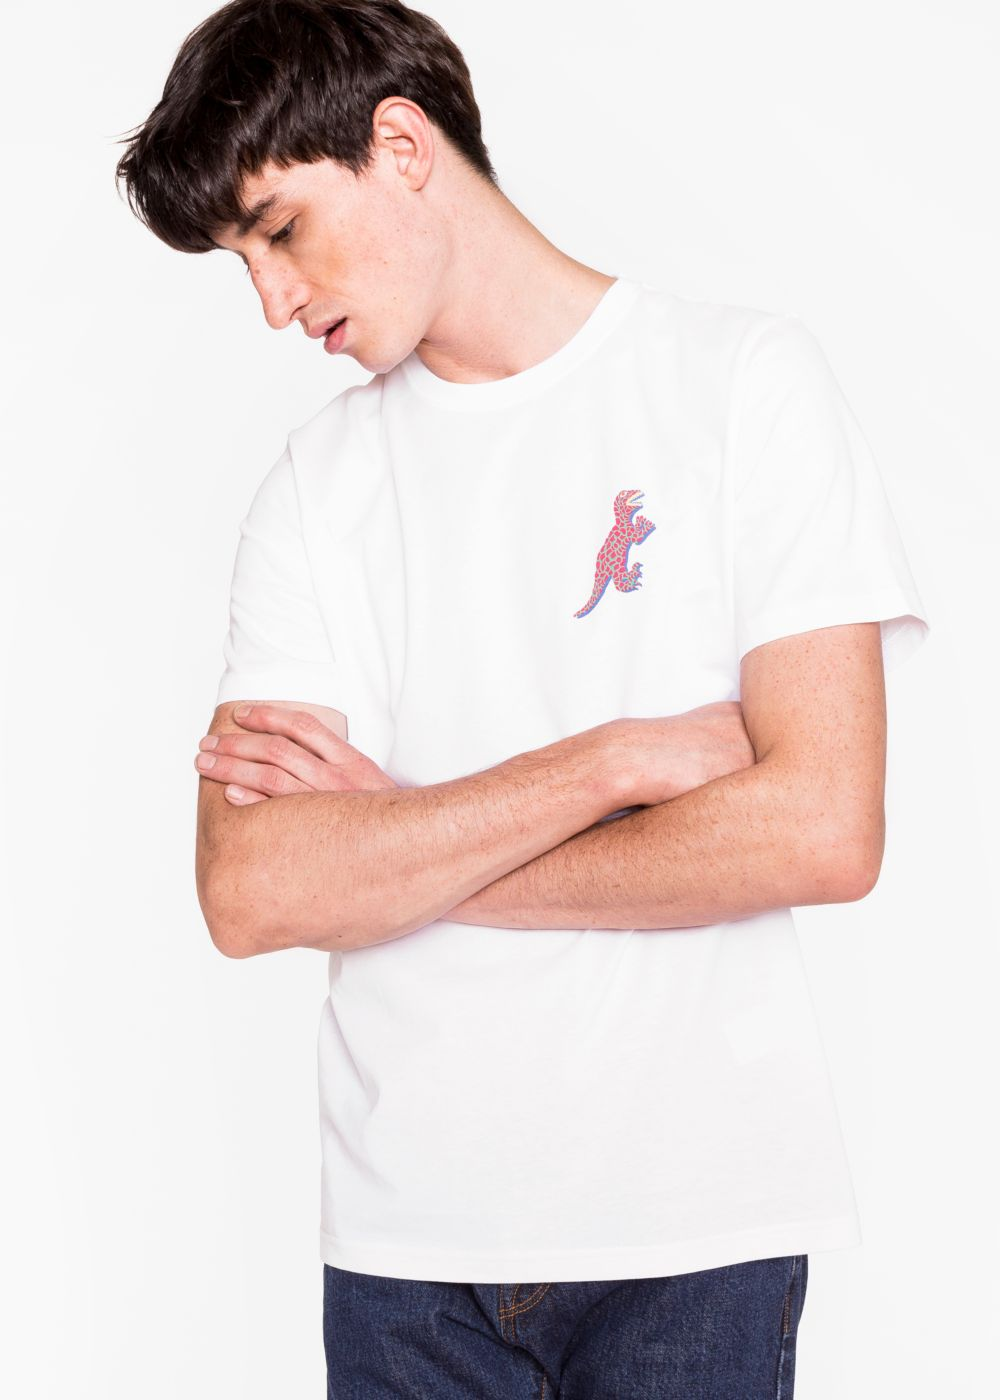 Paul Smith Men's White Organic-Cotton Small 'Dino' Print T-Shirt